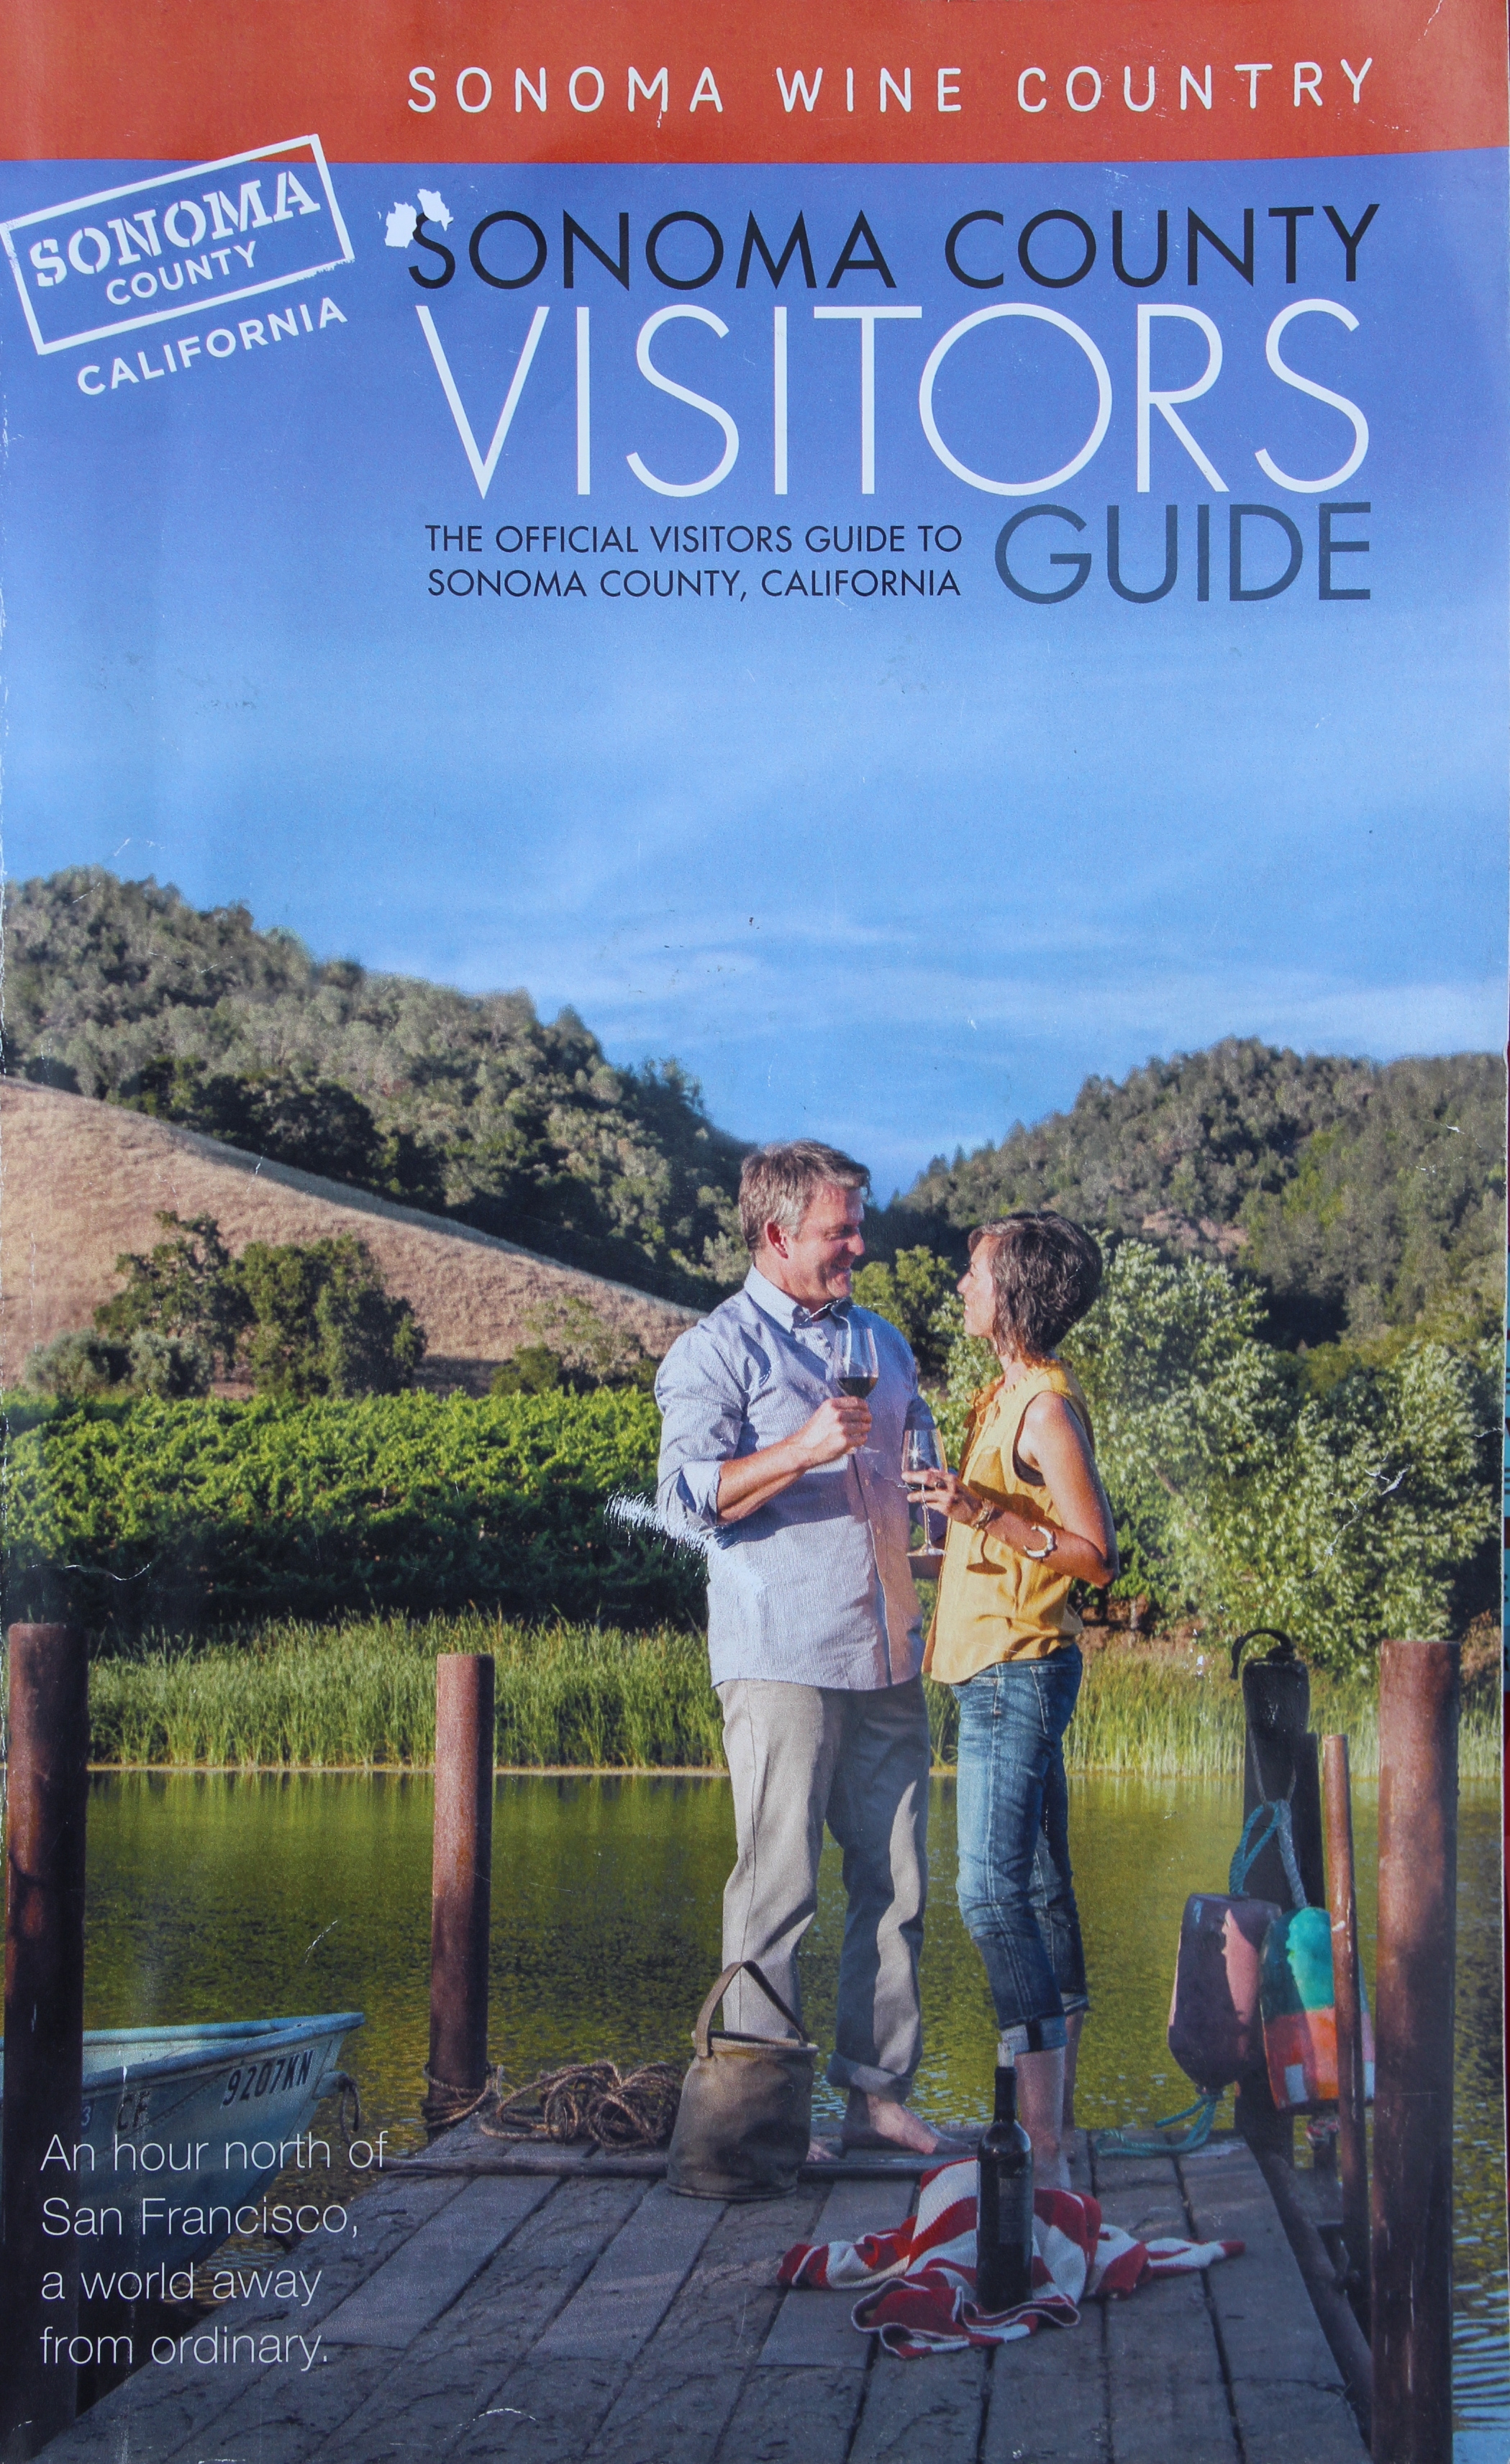 Sonoma County Visitors Guide